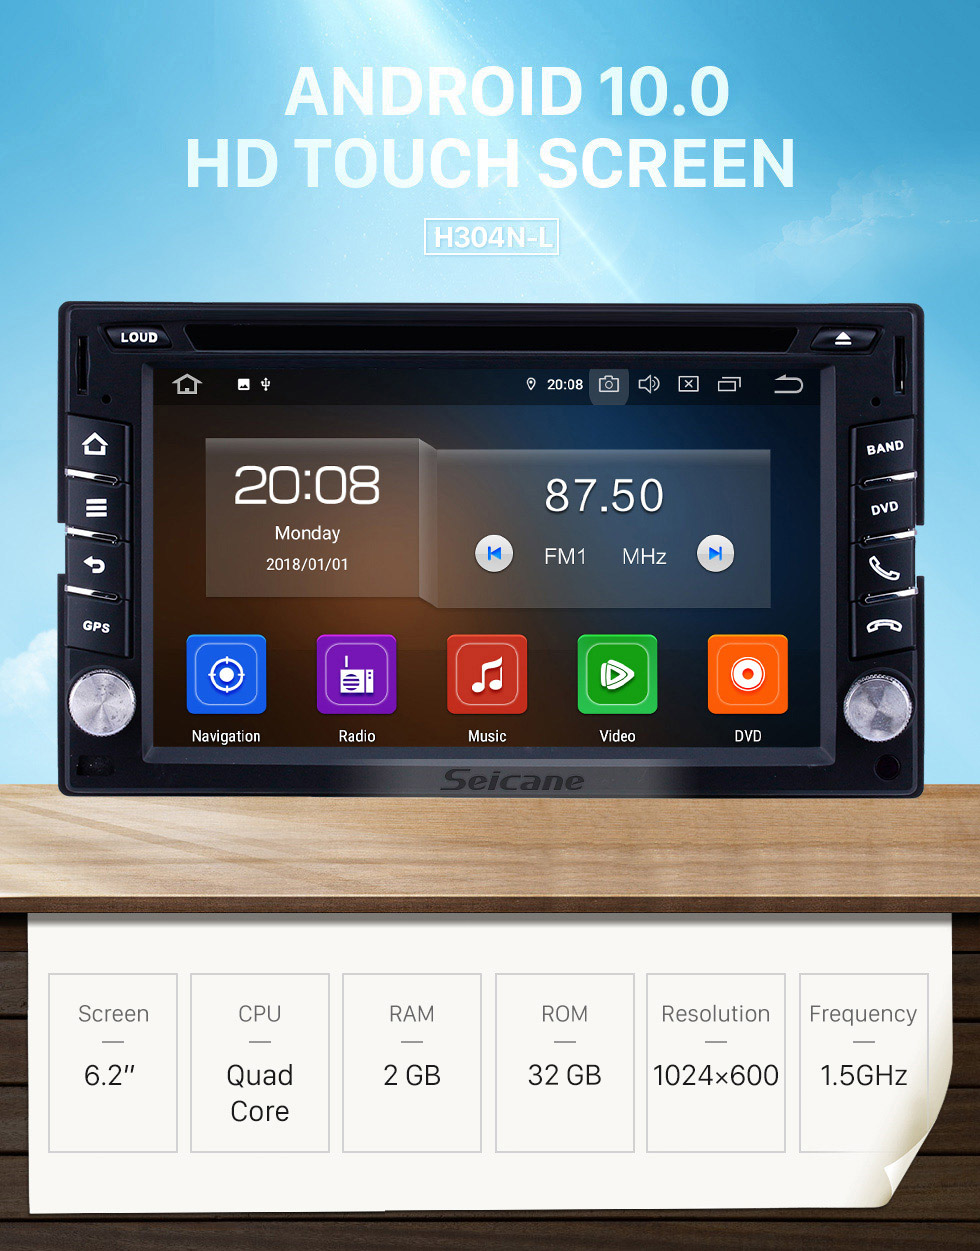 Seicane Android 10.0 HD Touchscreen 6.2 inch GPS Navigation Universal Radio Bluetooth AUX WIFI USB Carplay Music support 1080P Digital TV TPMS